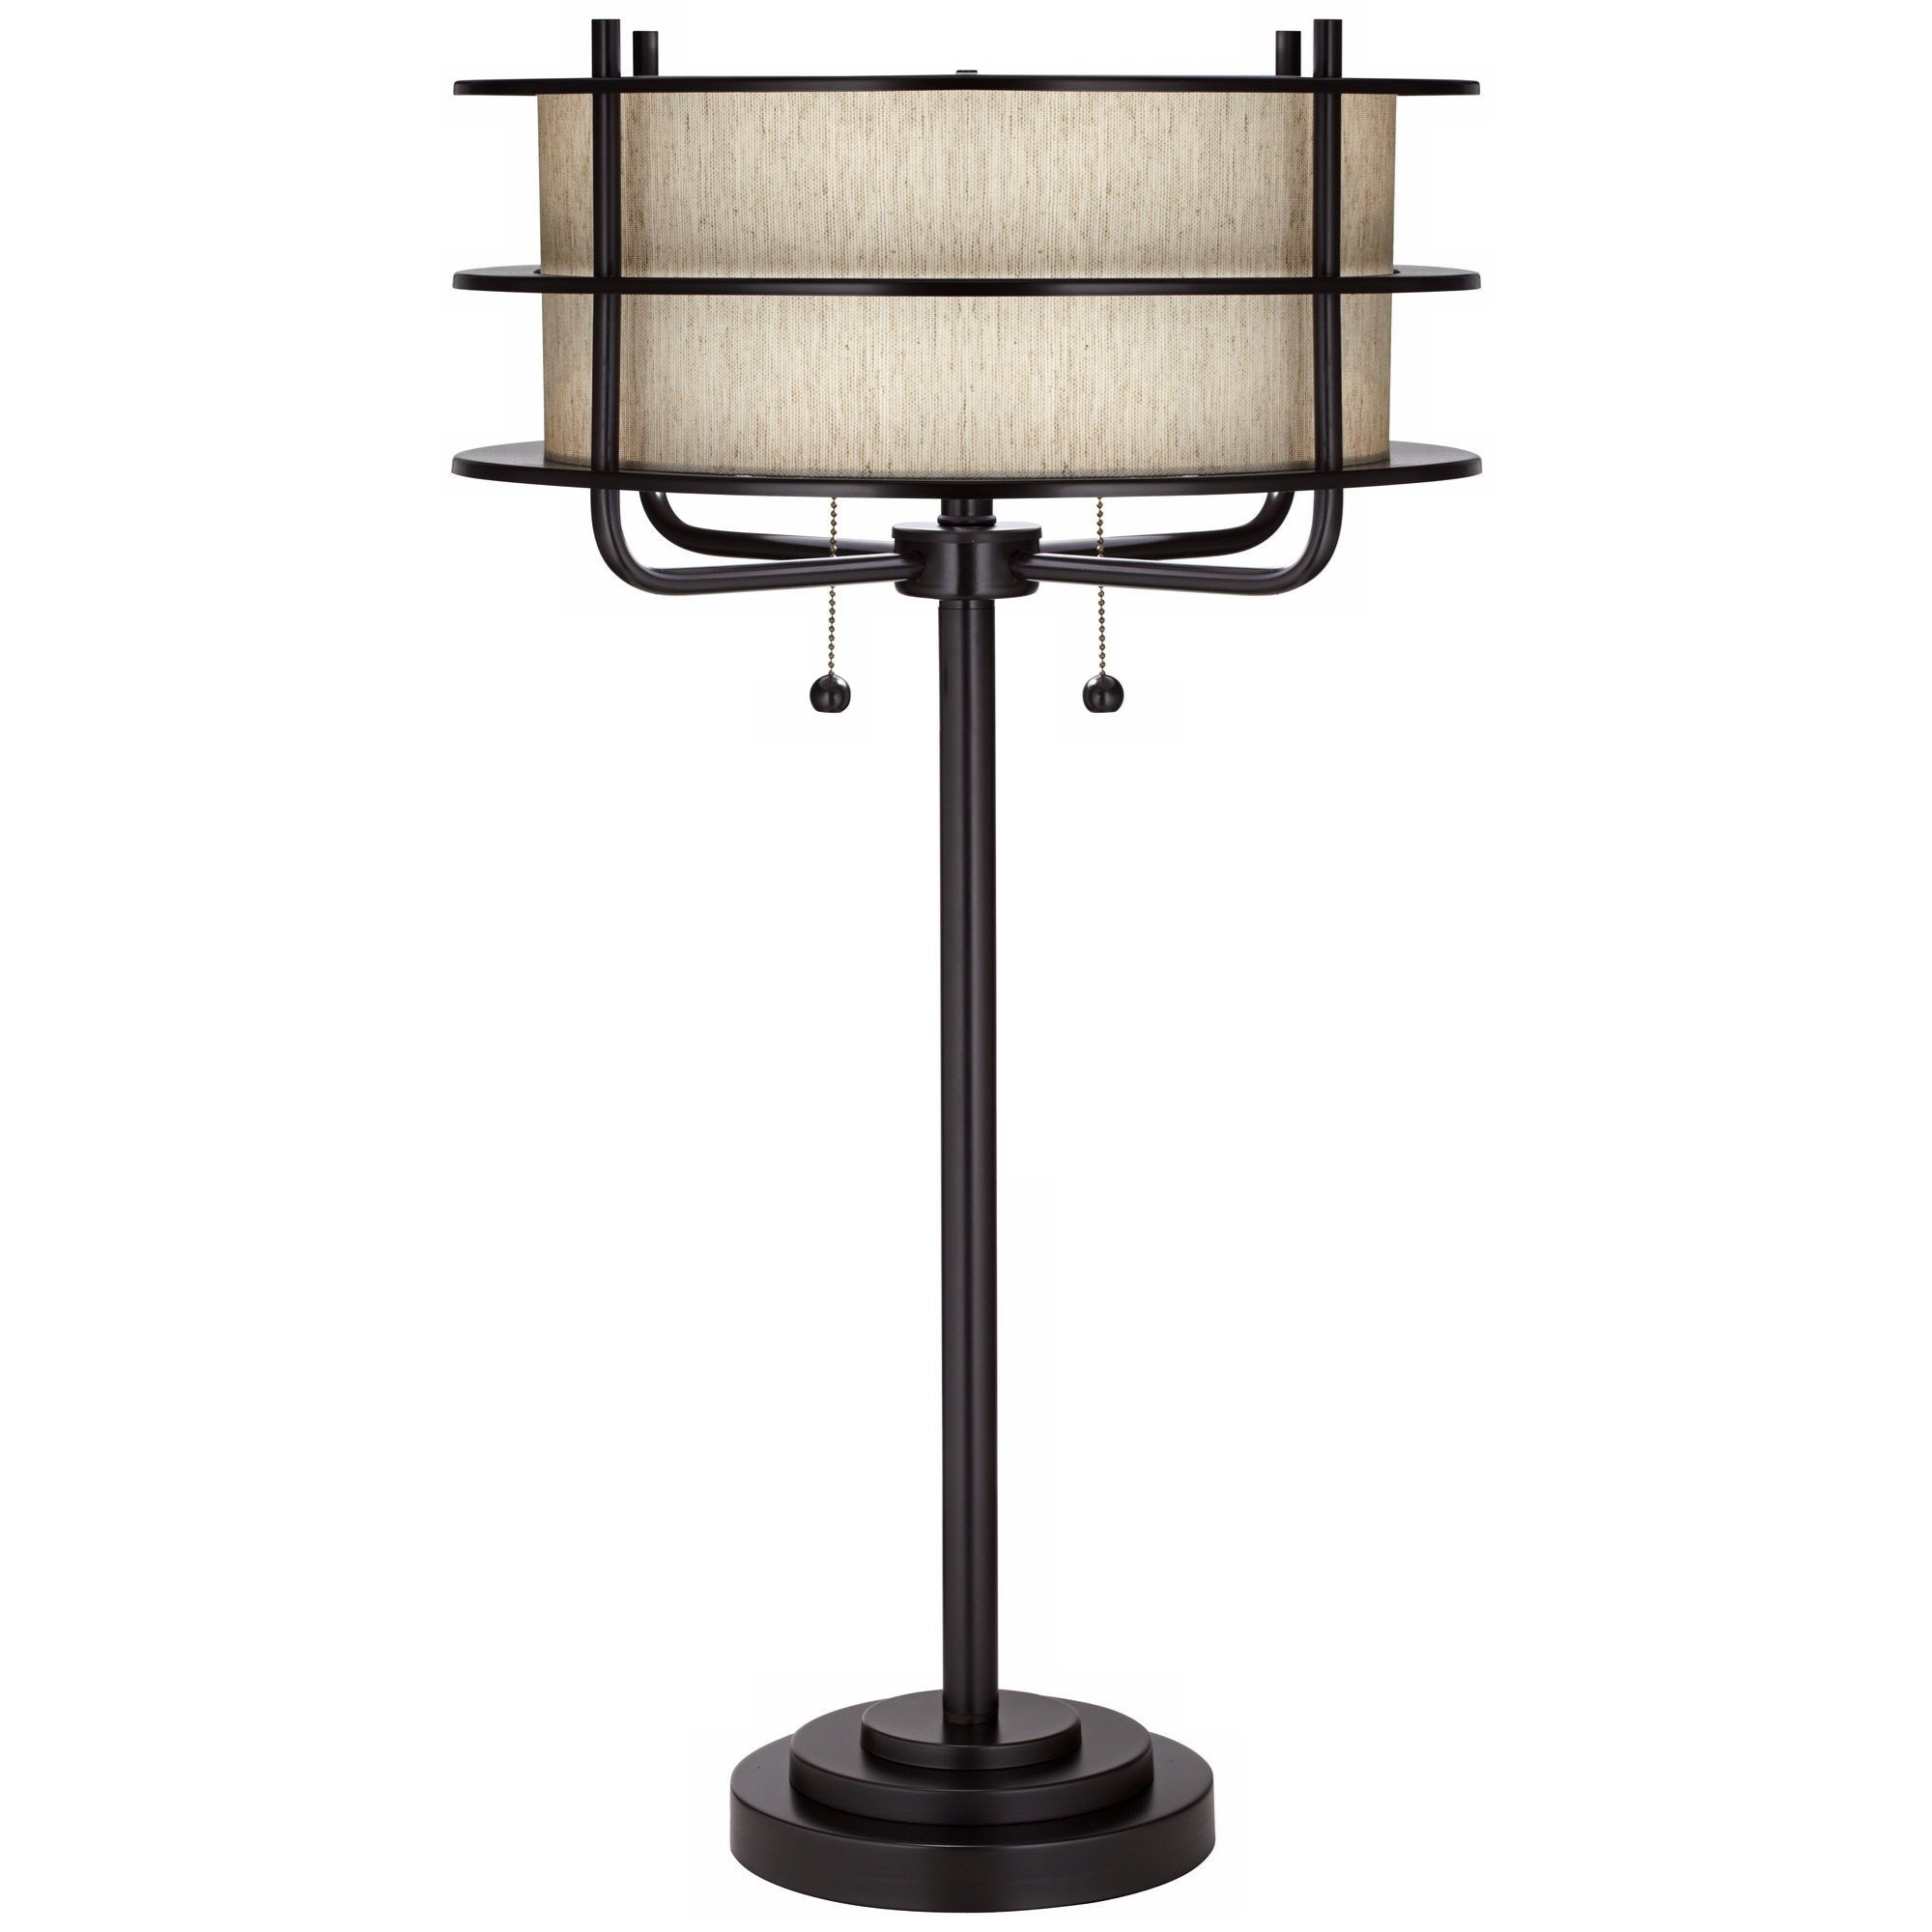 Table Lamps Ovation Table Lamp by Pacific Coast Lighting at Reid's Furniture